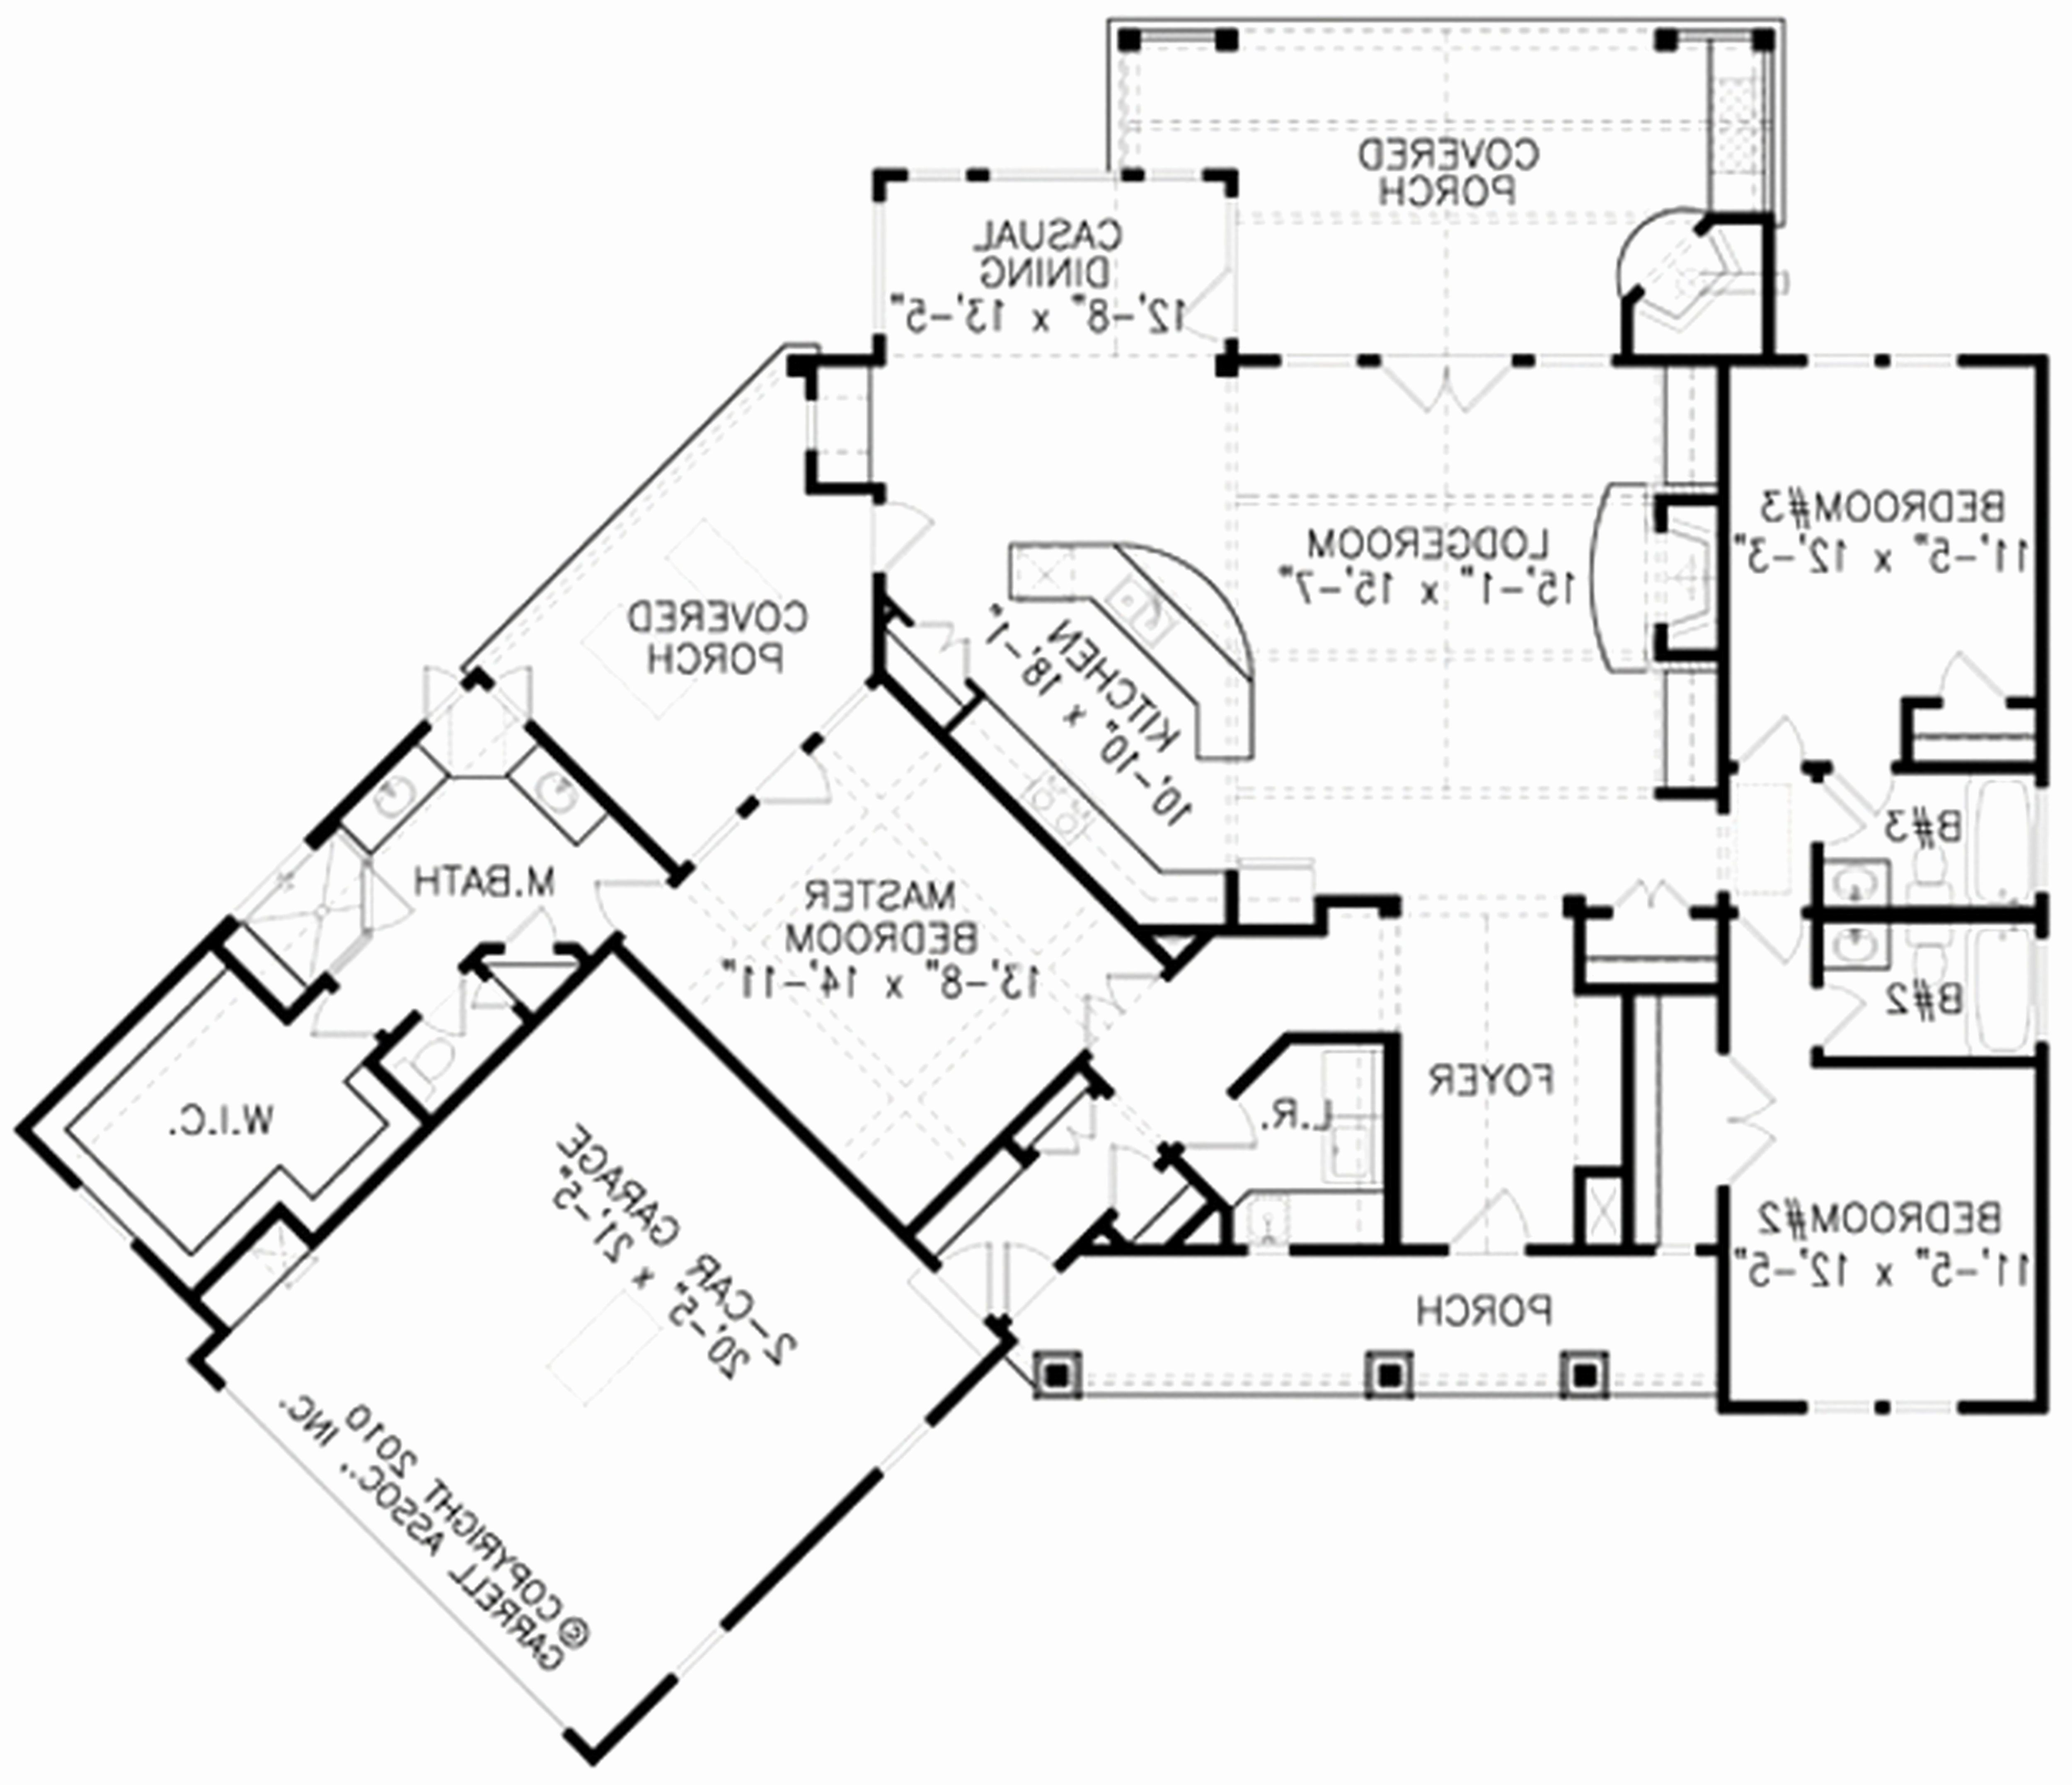 Landscape Drawing Book Pdf Luxury Building Drawing Plan Elevation Section Pdf At Getdrawings In 2020 Unique House Plans Tiny House Plans House Plans One Story